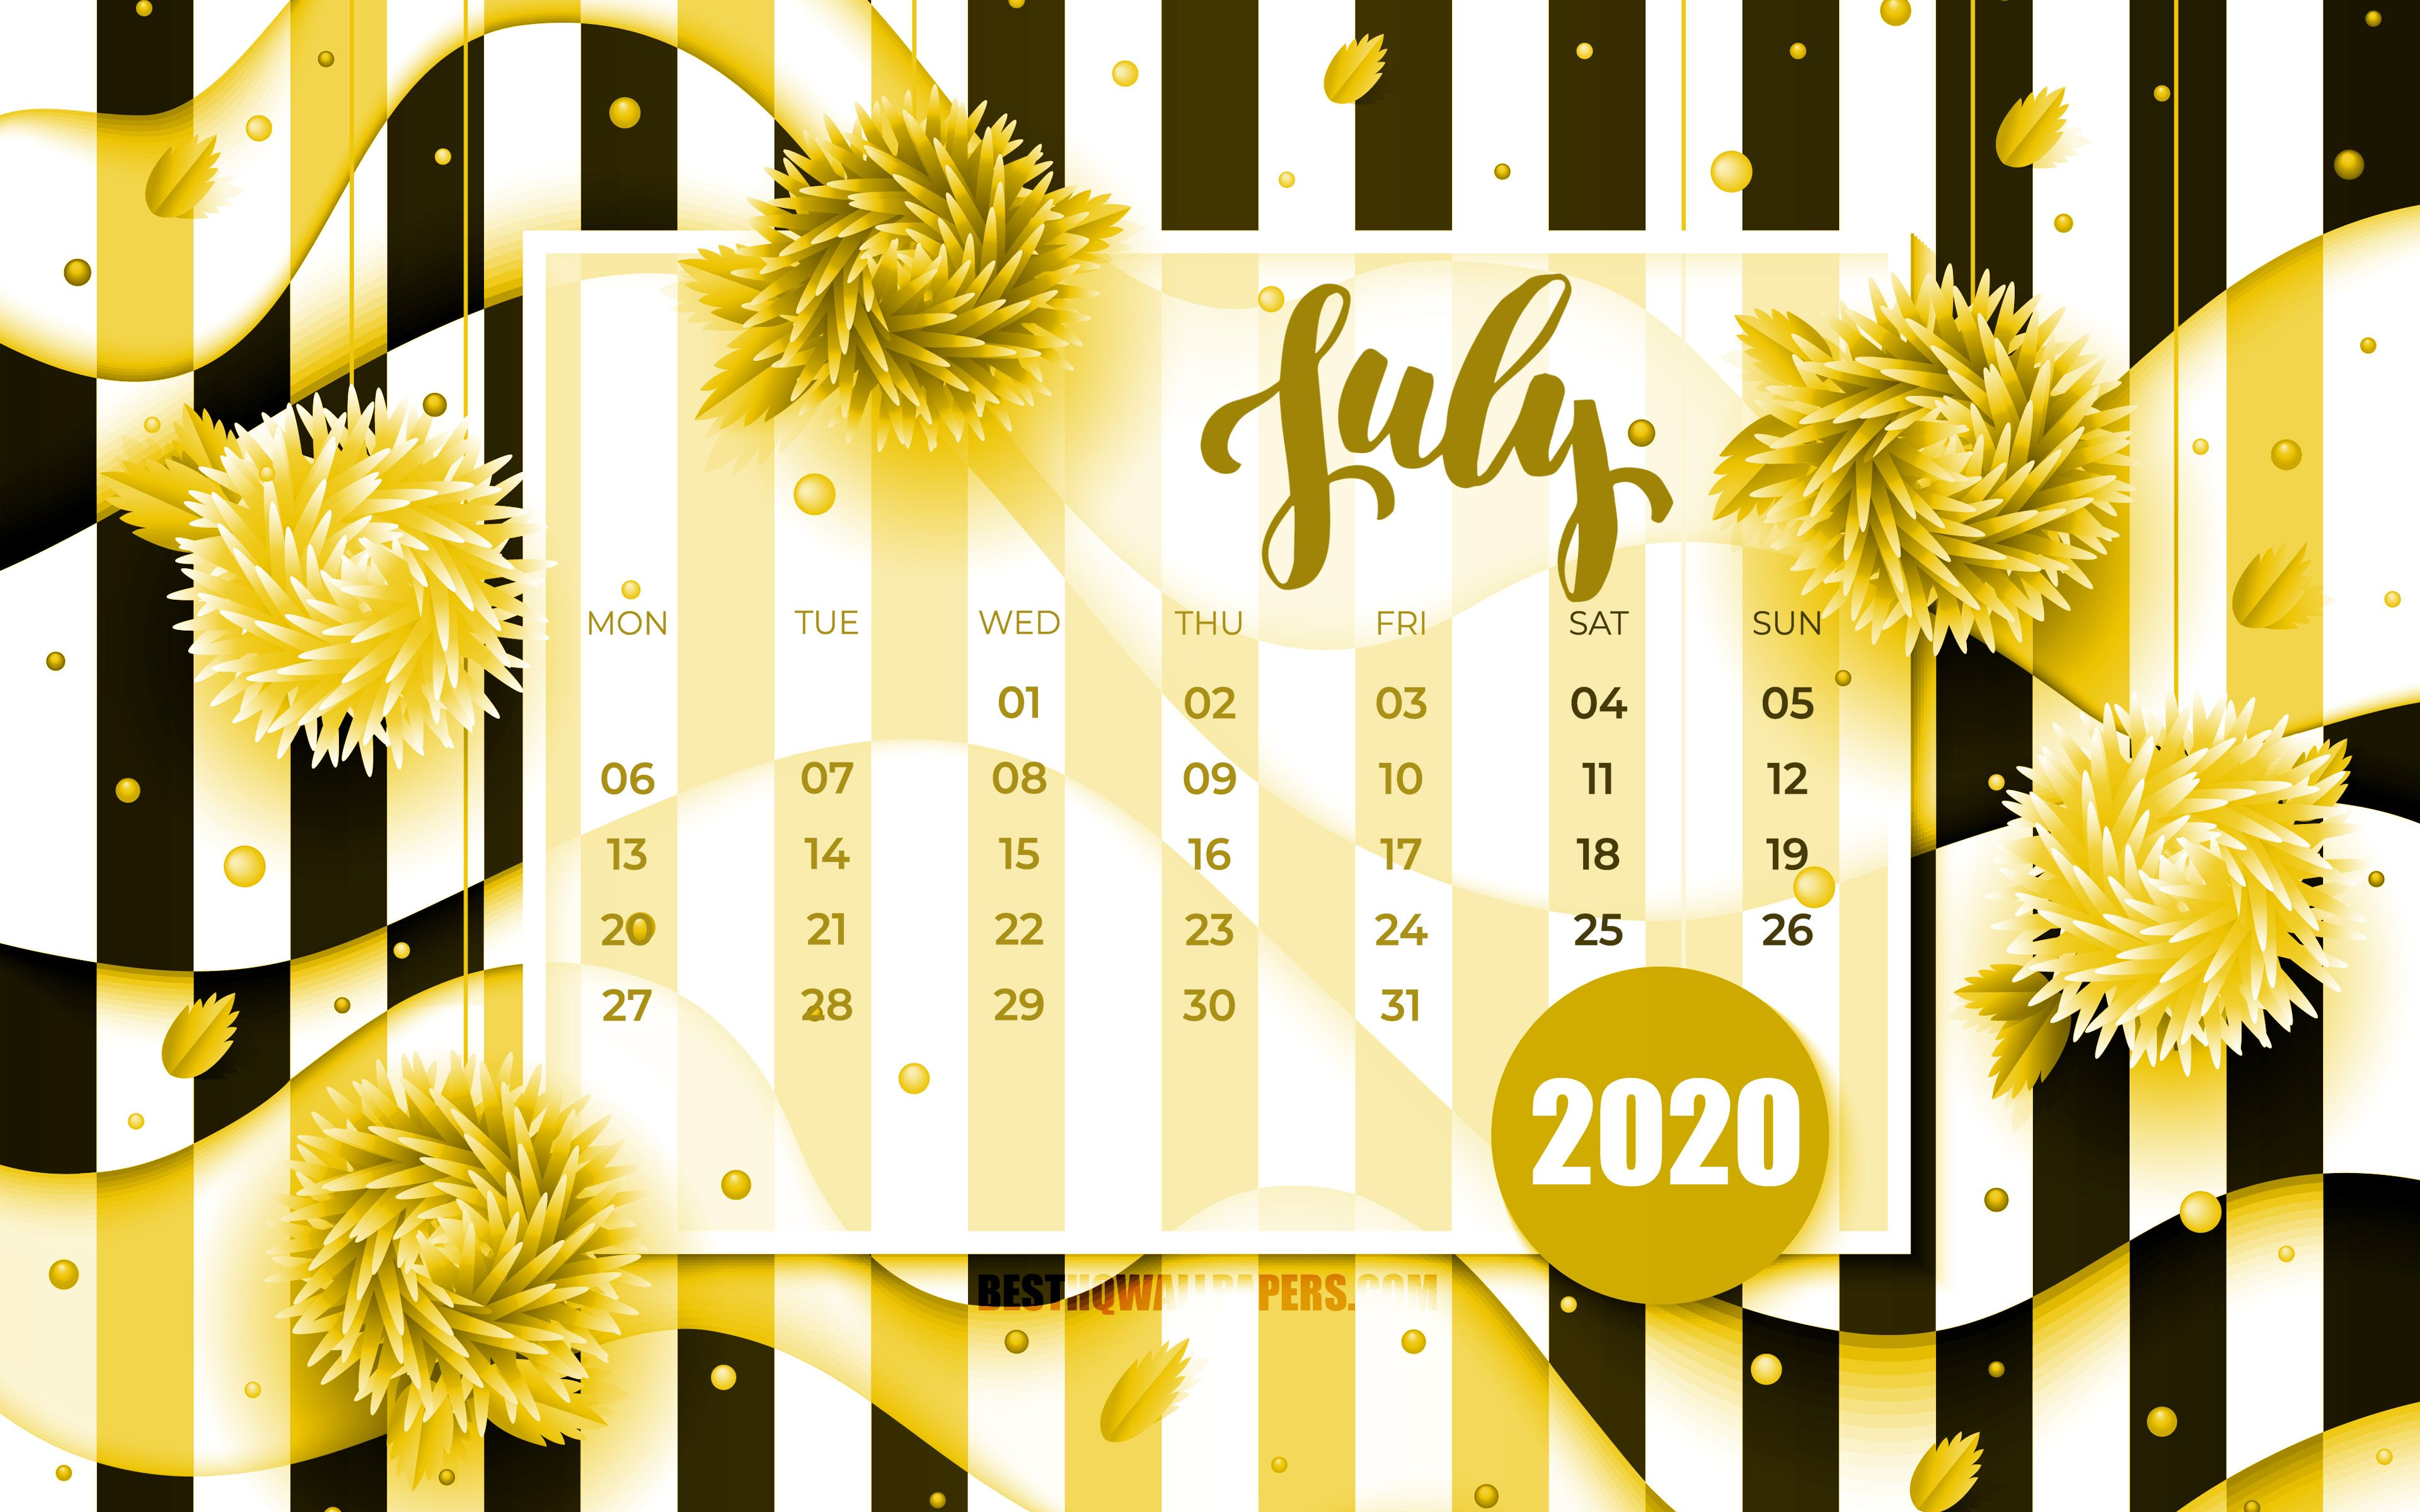 Download wallpapers July 2020 Calendar, 4k, yellow 3D flowers